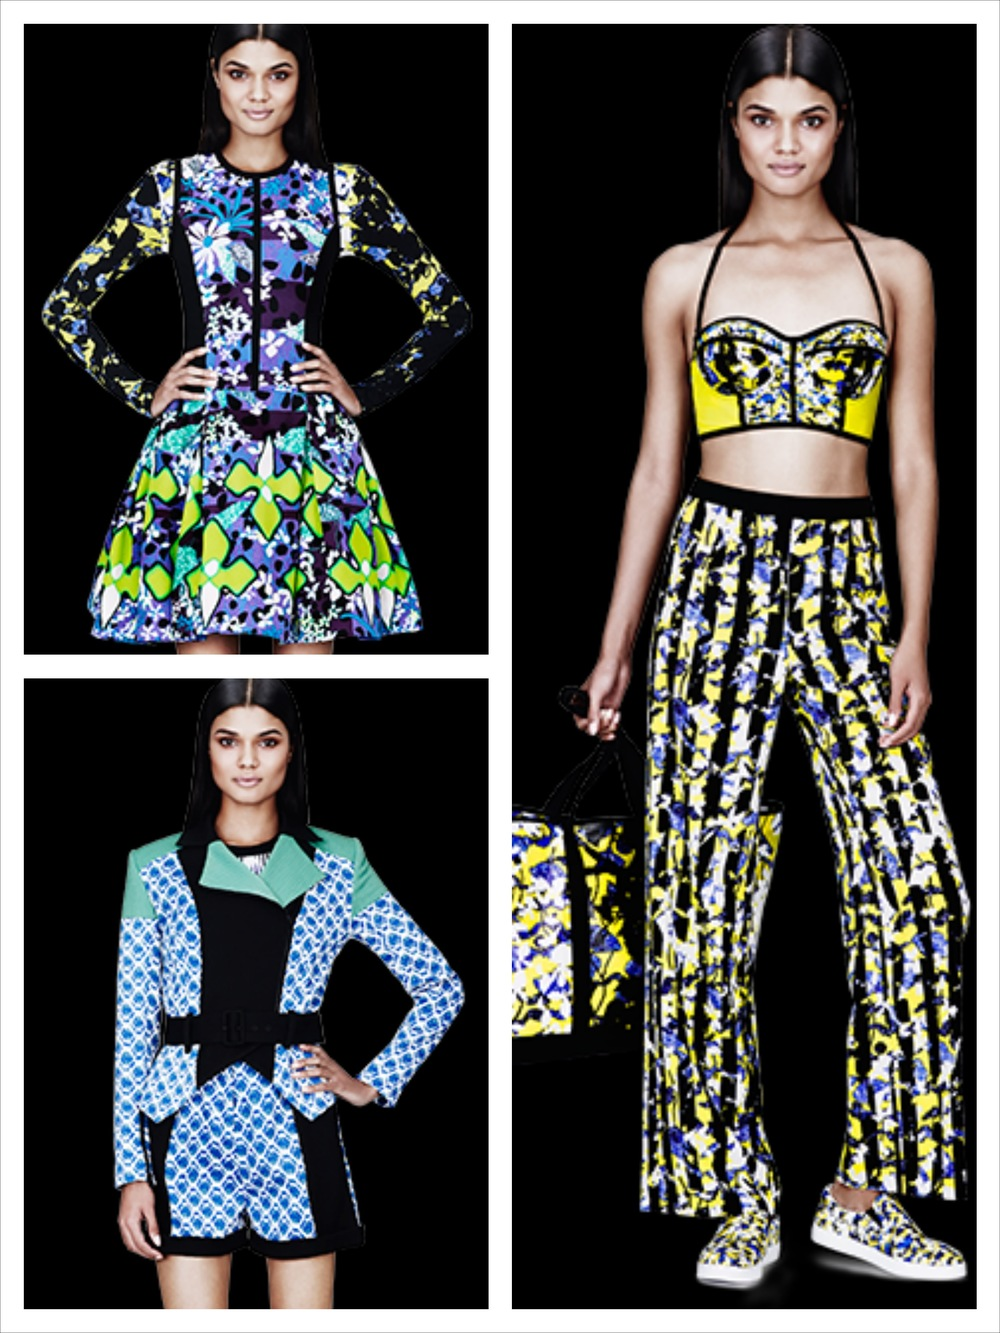 peterpilotto2.jpg